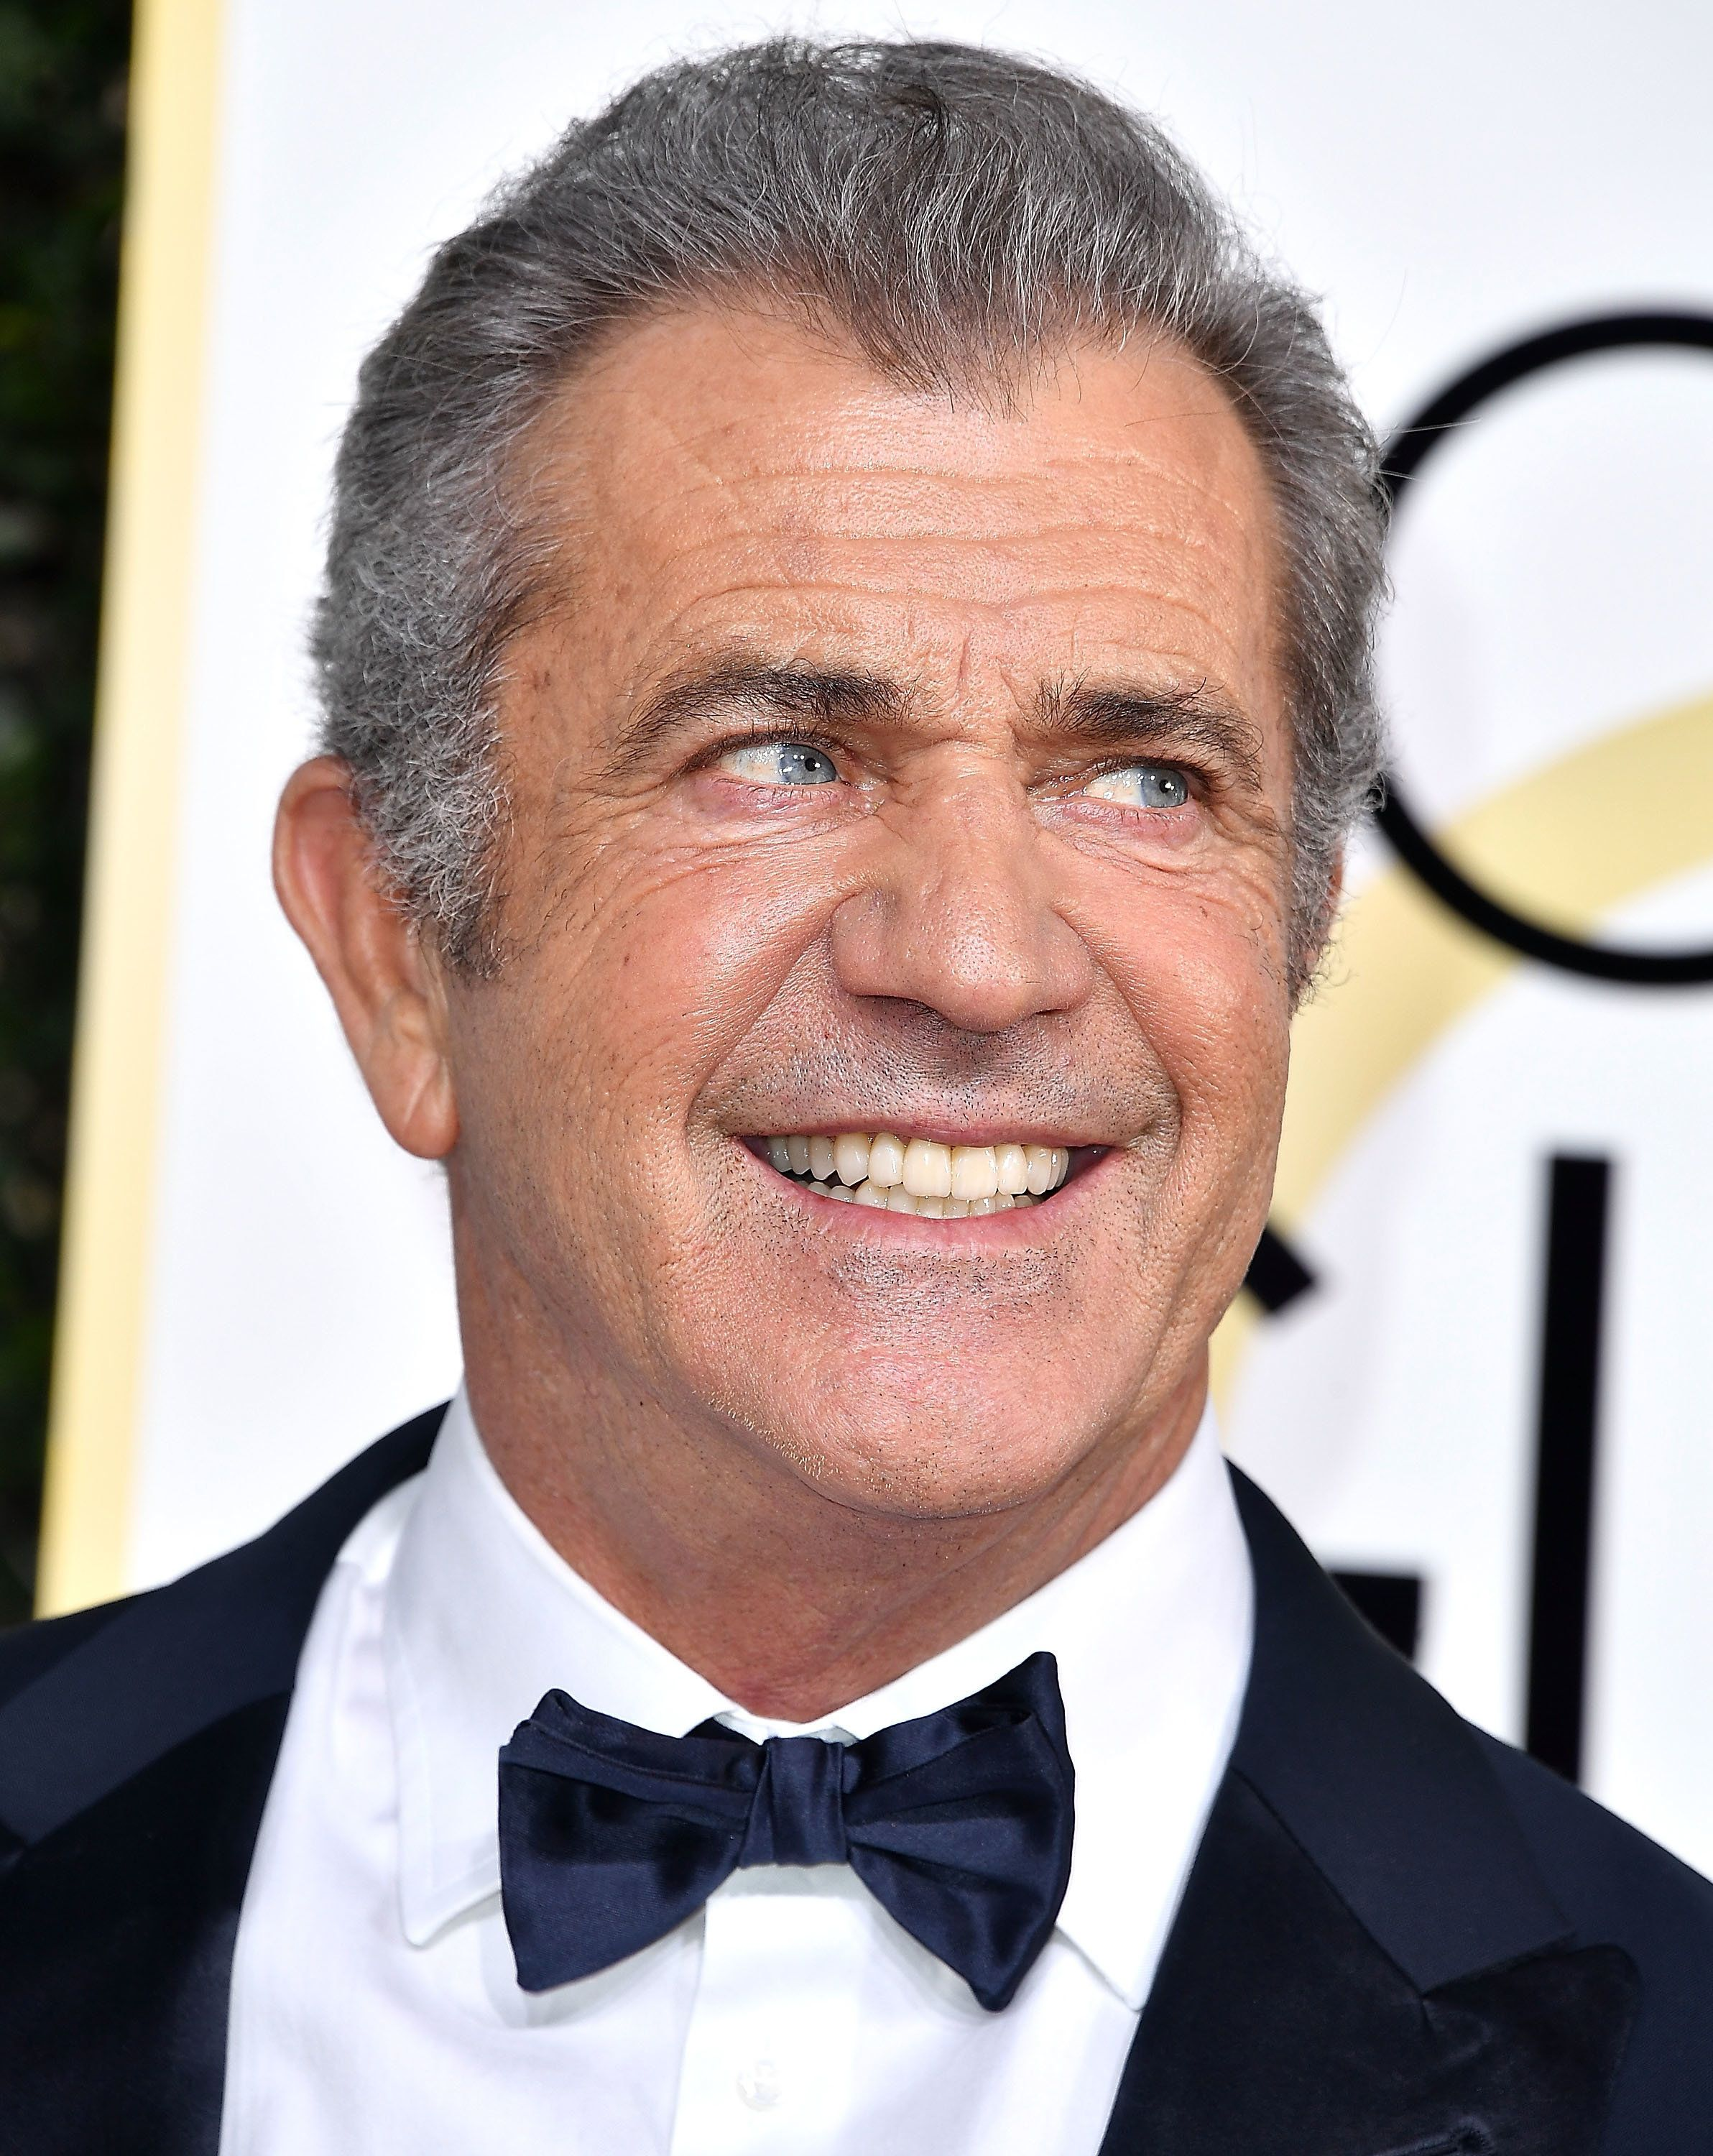 BEVERLY HILLS, CA - JANUARY 08:  Mel Gibson arrives at the 74th Annual Golden Globe Awards at The Beverly Hilton Hotel on January 8, 2017 in Beverly Hills, California.  (Photo by Steve Granitz/WireImage)